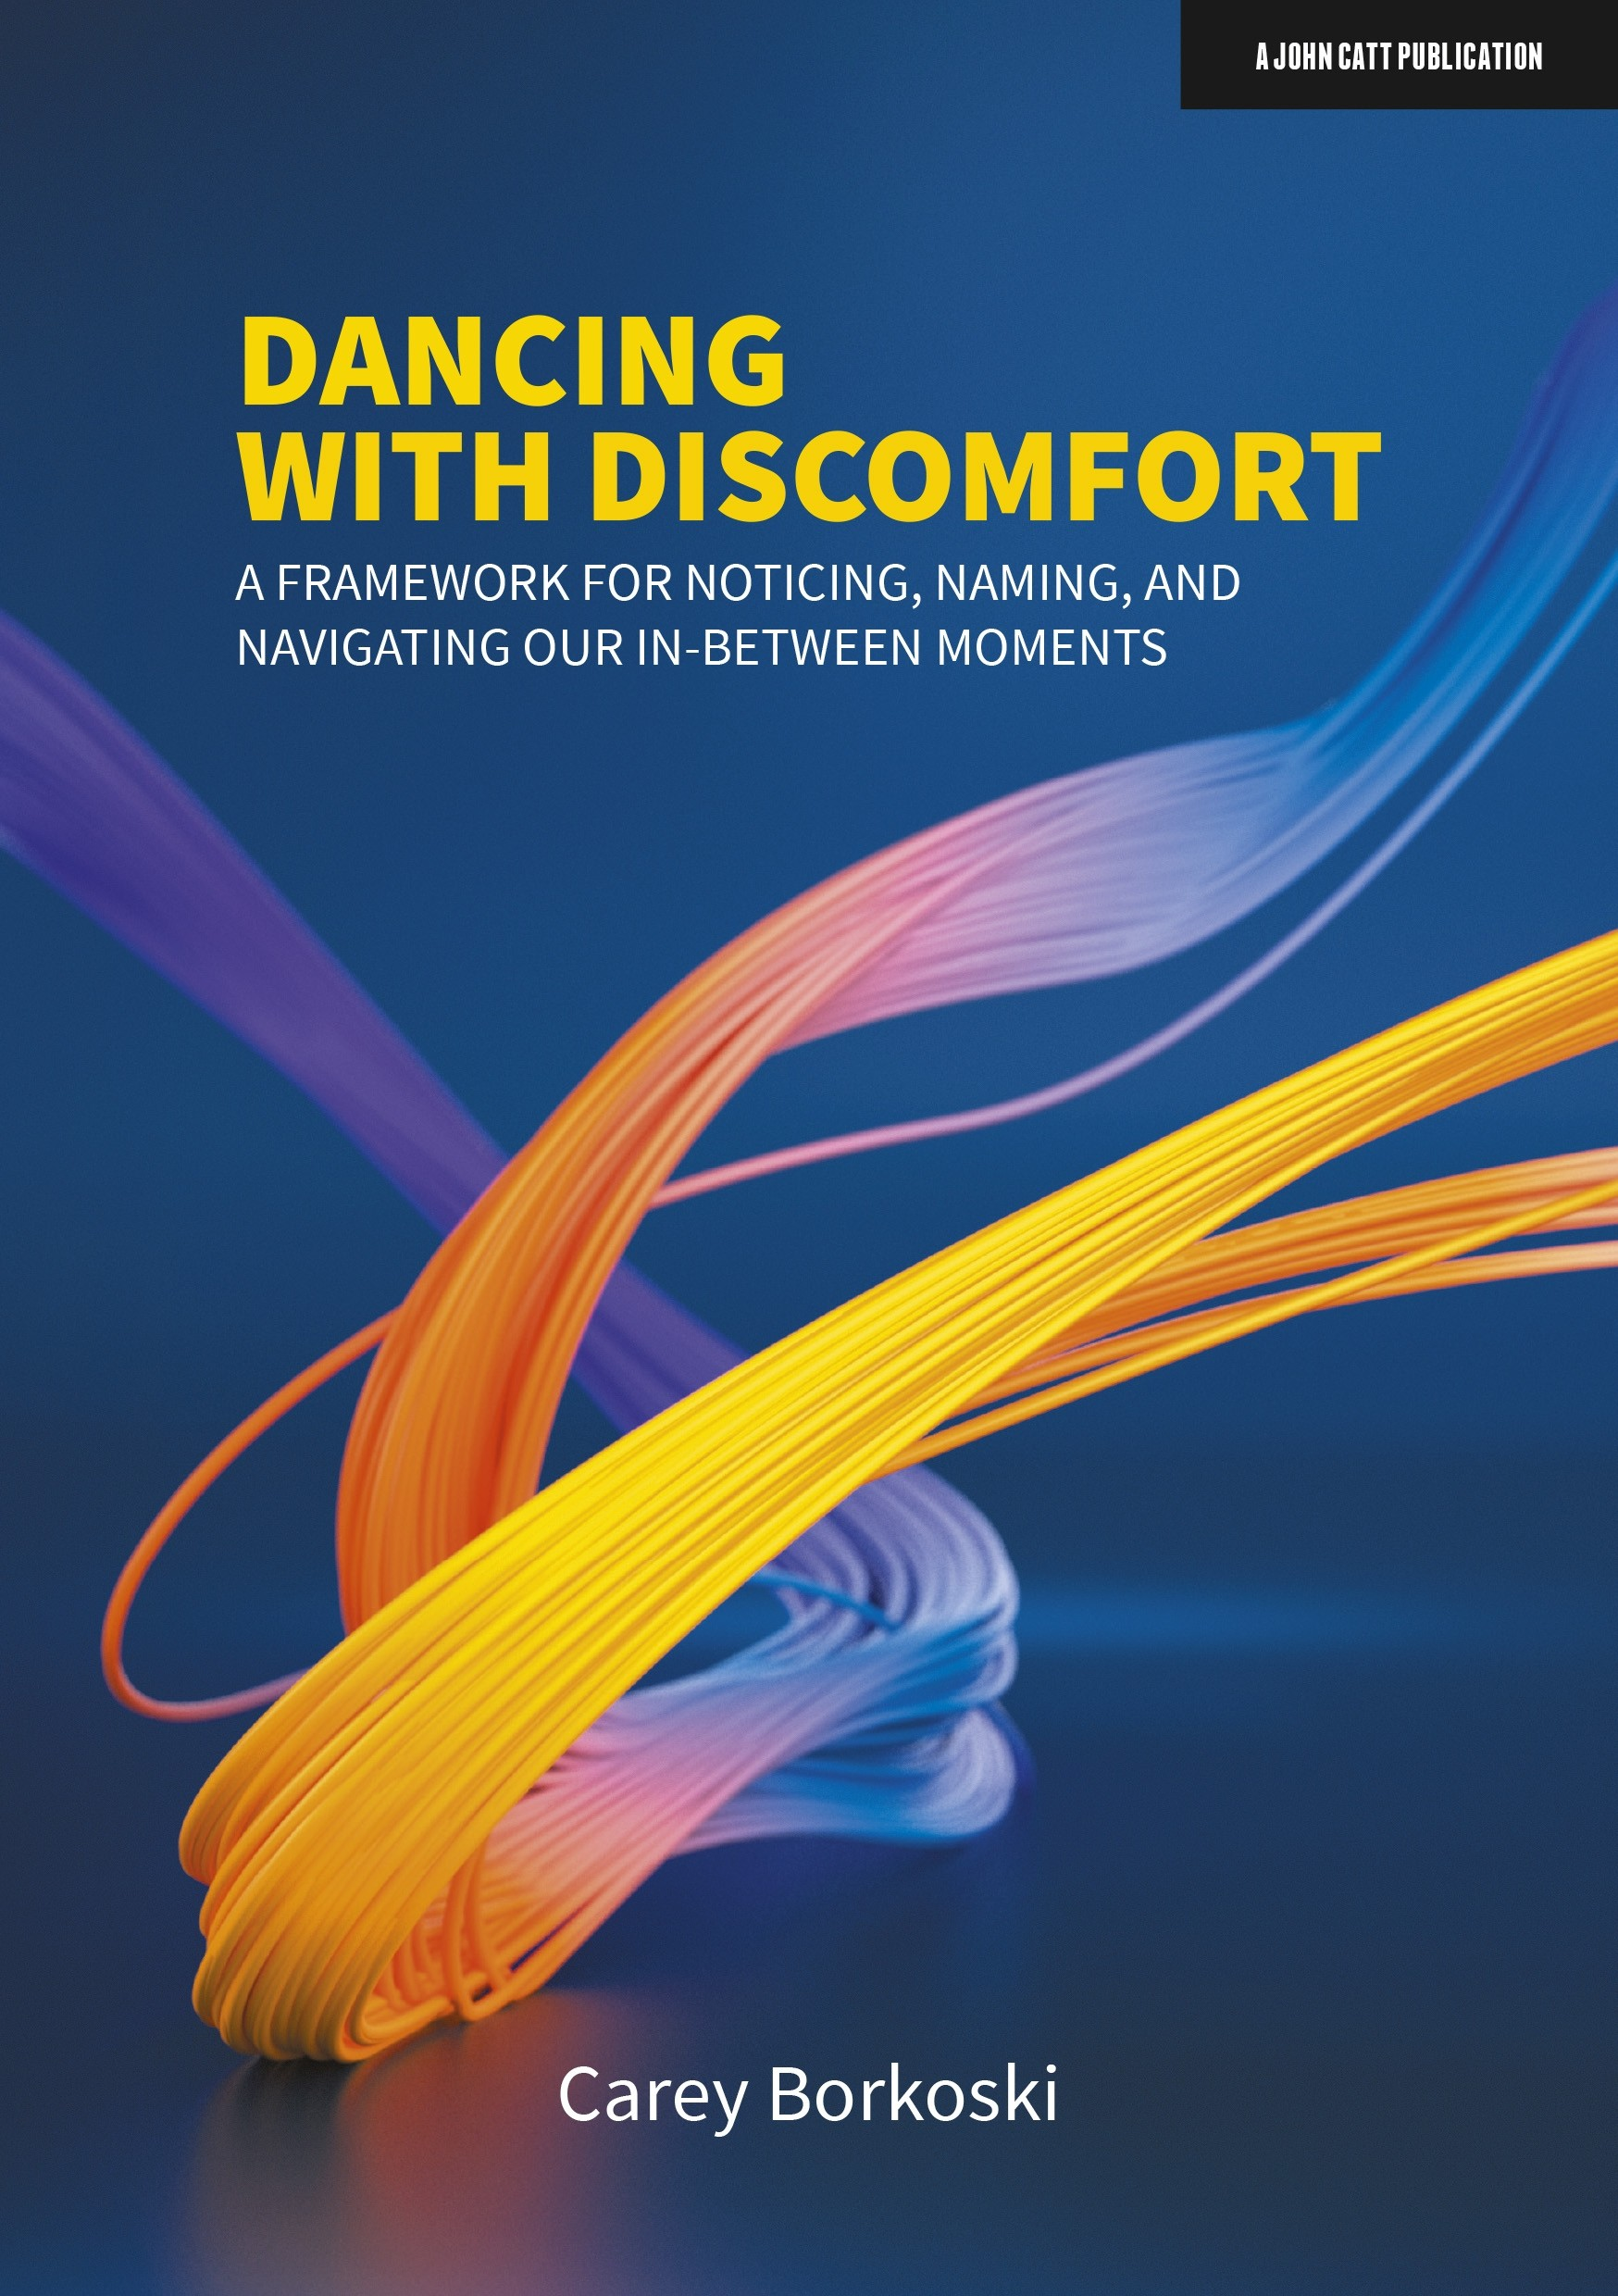 Dancing with Discomfort: A framework for noticing, naming, and navigating our in-between moments